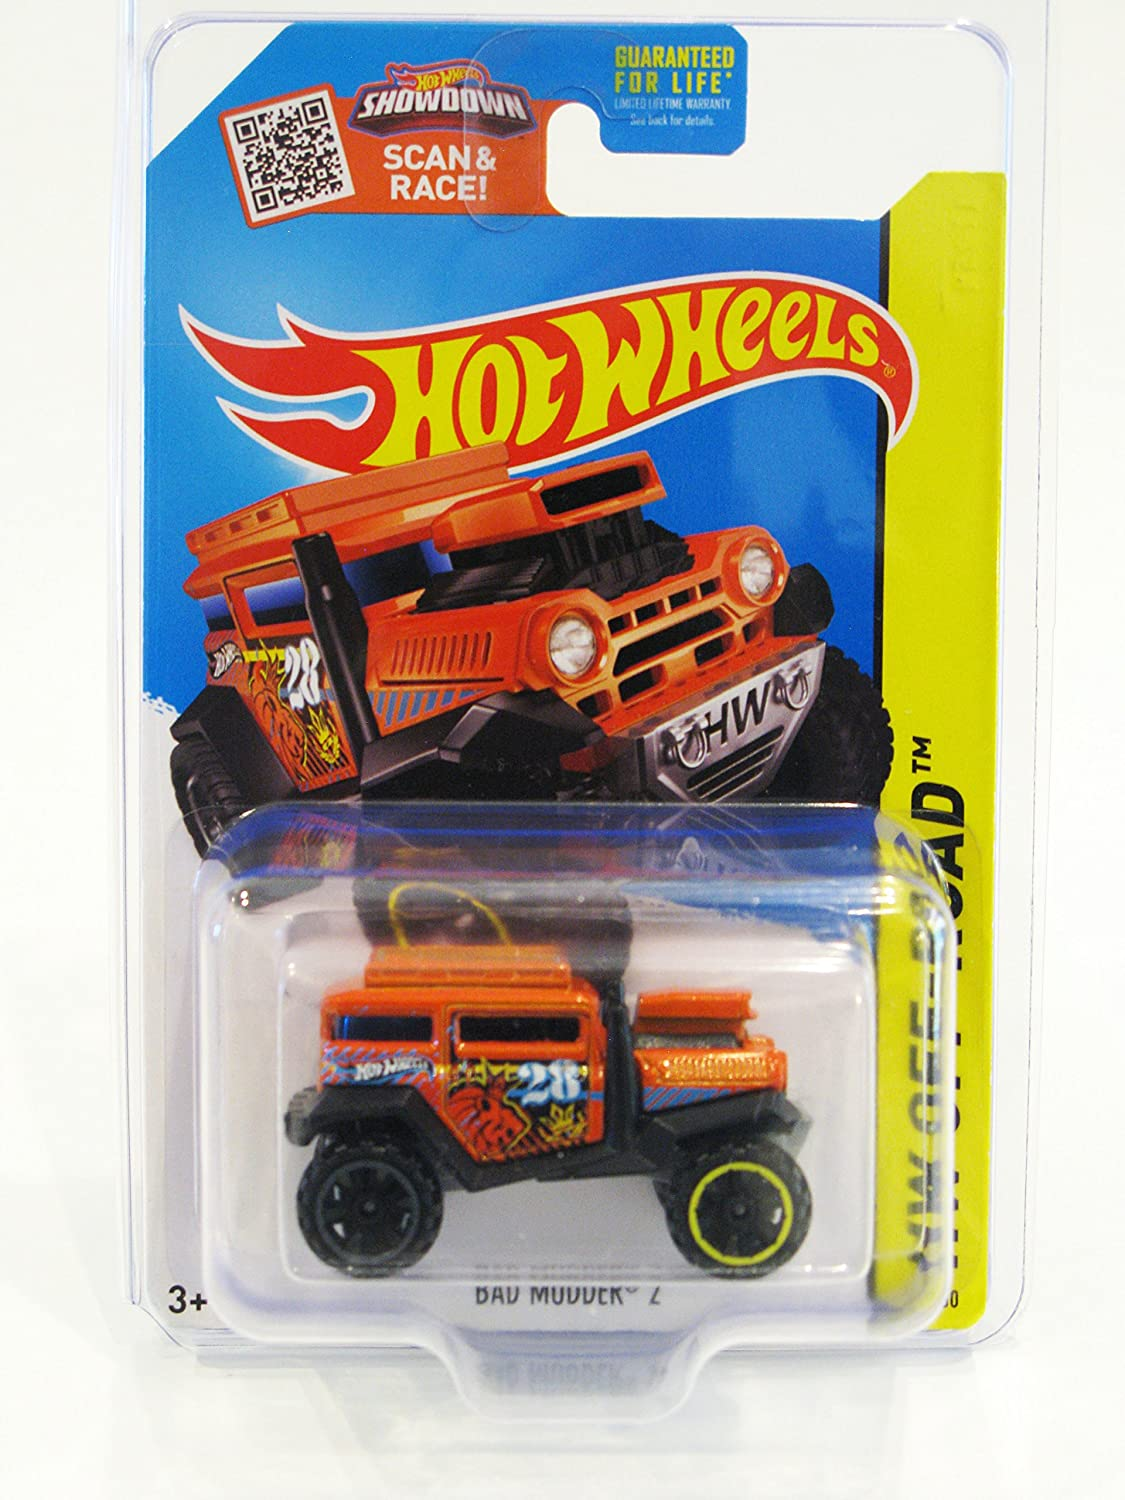 2015 Hot Wheels HW OffRoad Battle Kings Bad Mudder 2   88 250 (orange) (BlackOR6SP Wheels) in Predecto Pak